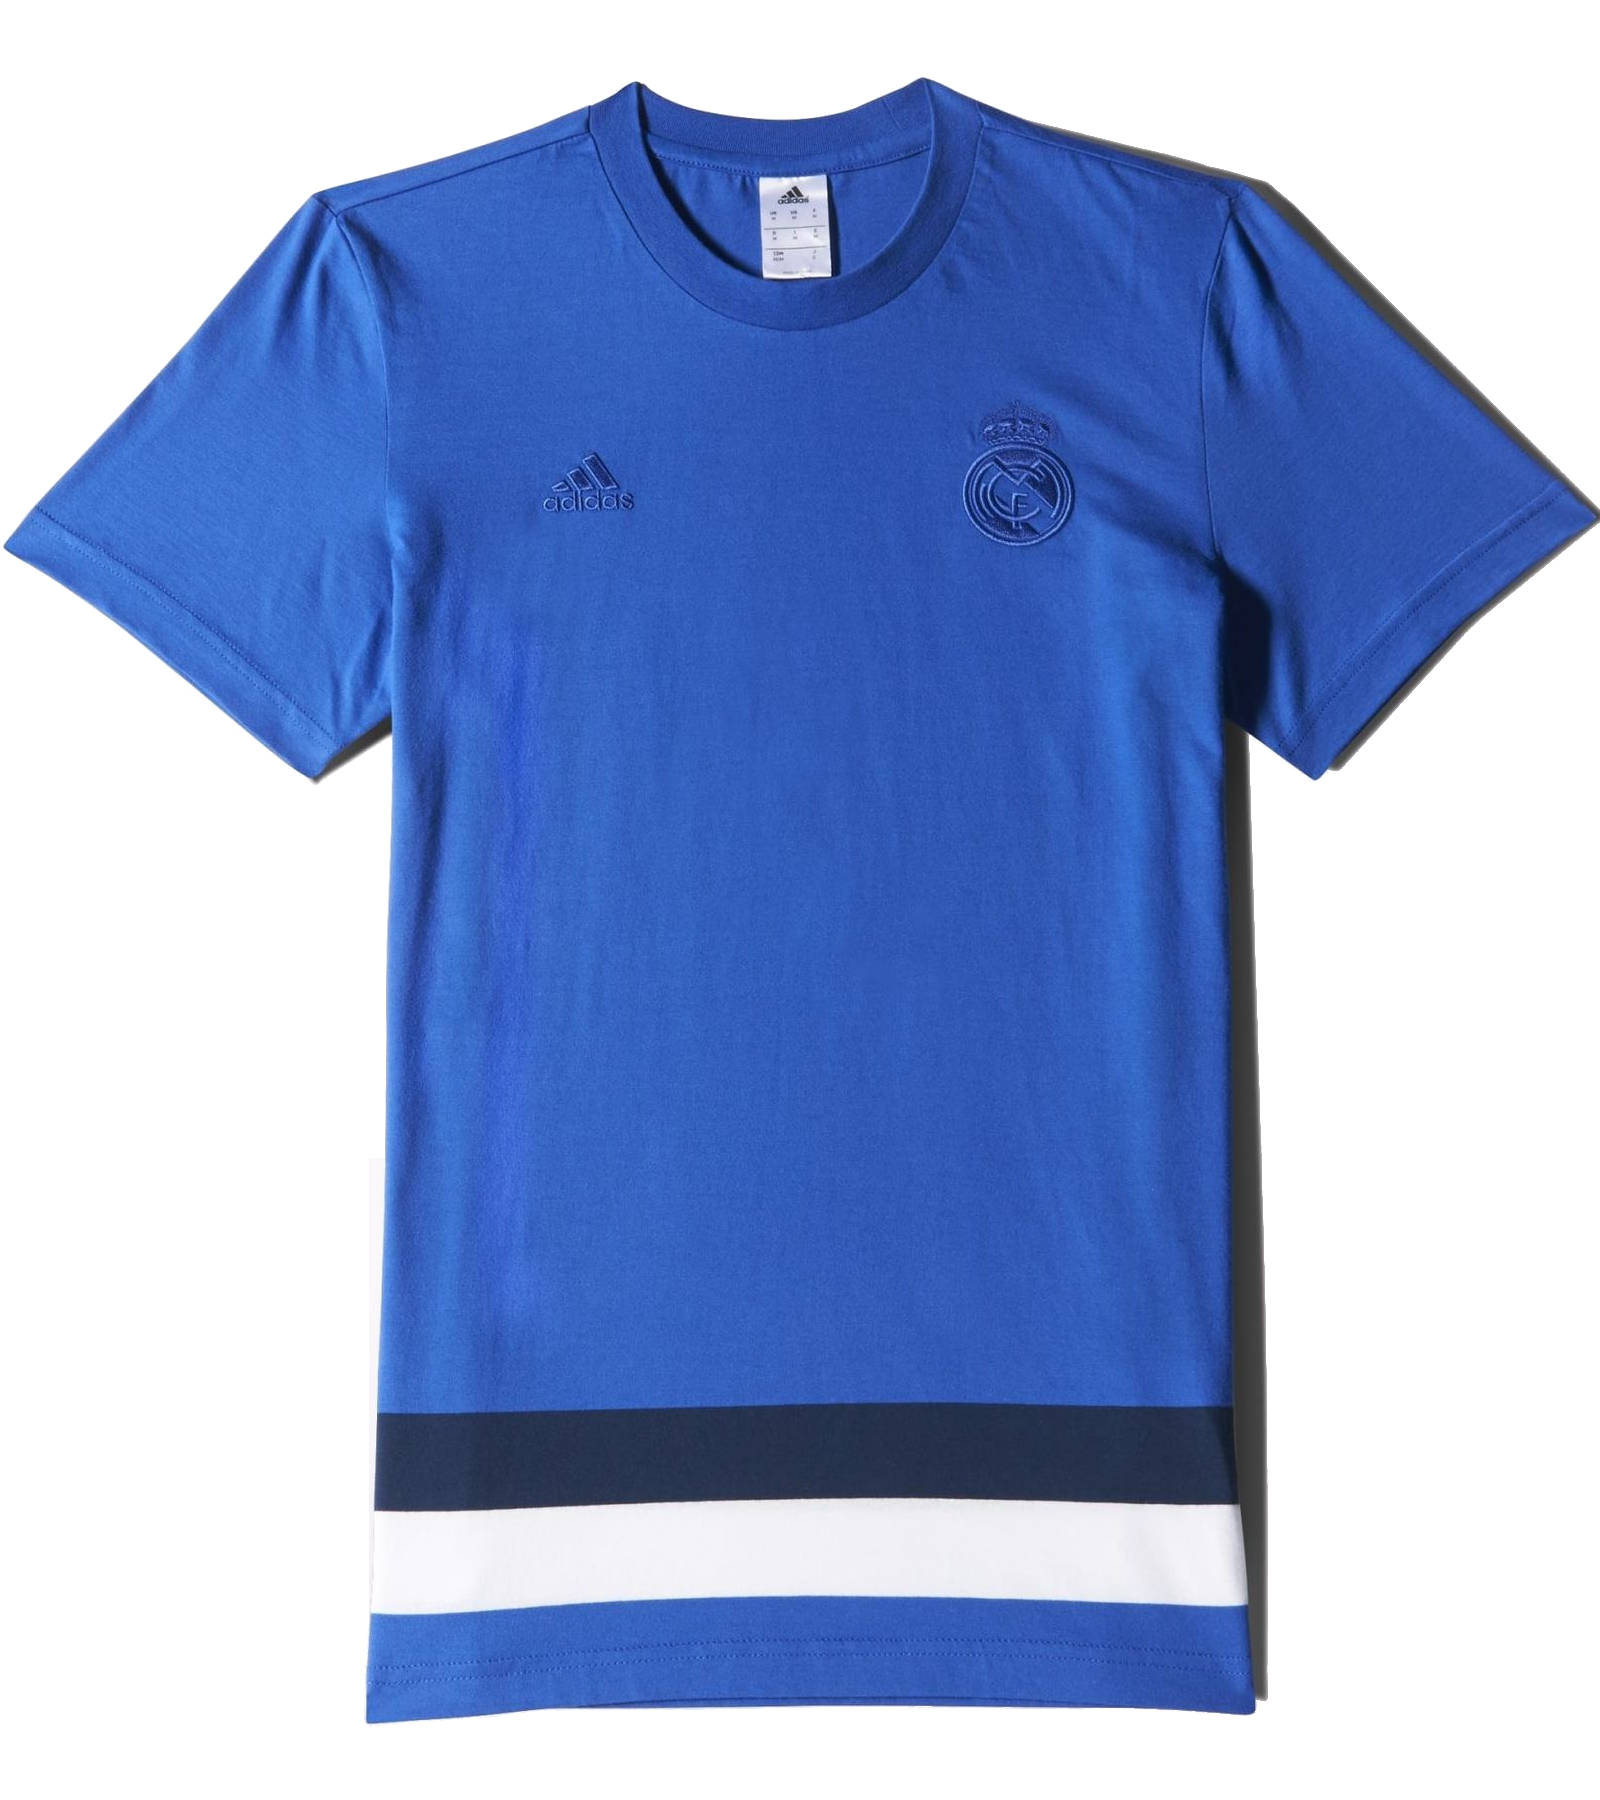 anthem tee real madrid adidas leisure t shirt men cotton 2015 blue ebay. Black Bedroom Furniture Sets. Home Design Ideas